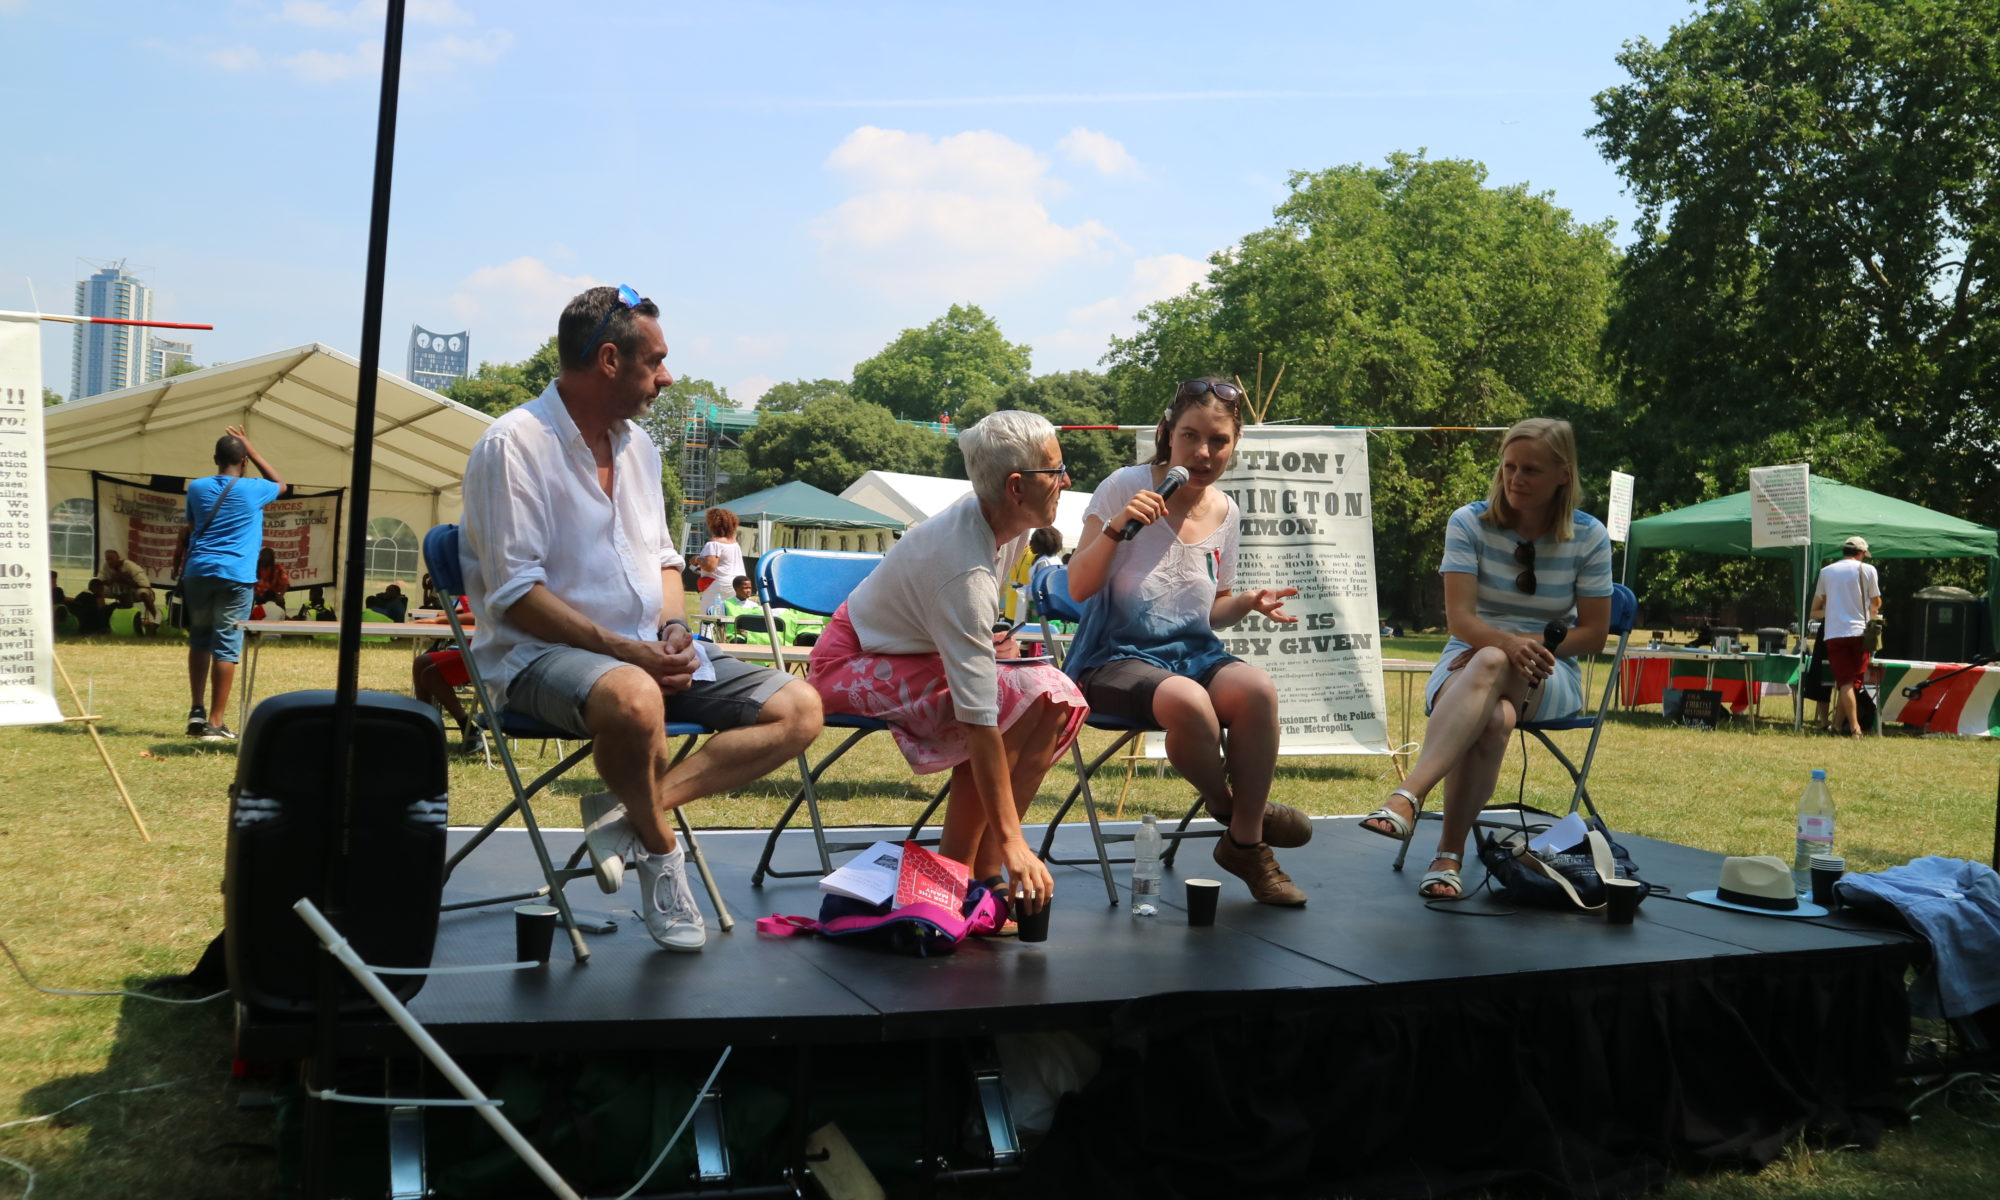 'people's question time', Kennington park, 7 July 2018